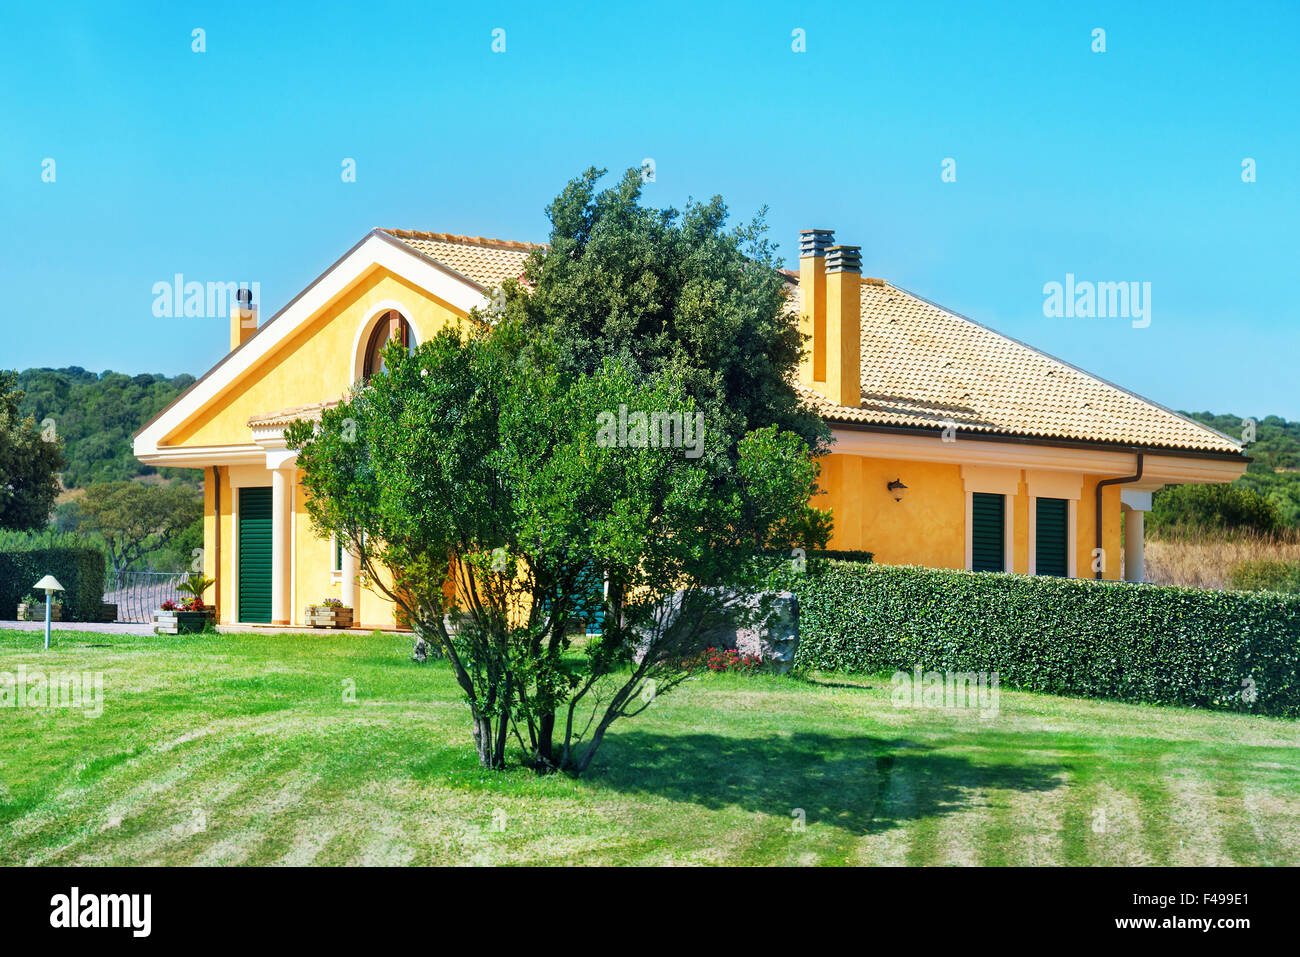 Cozy house with garden - Stock Image